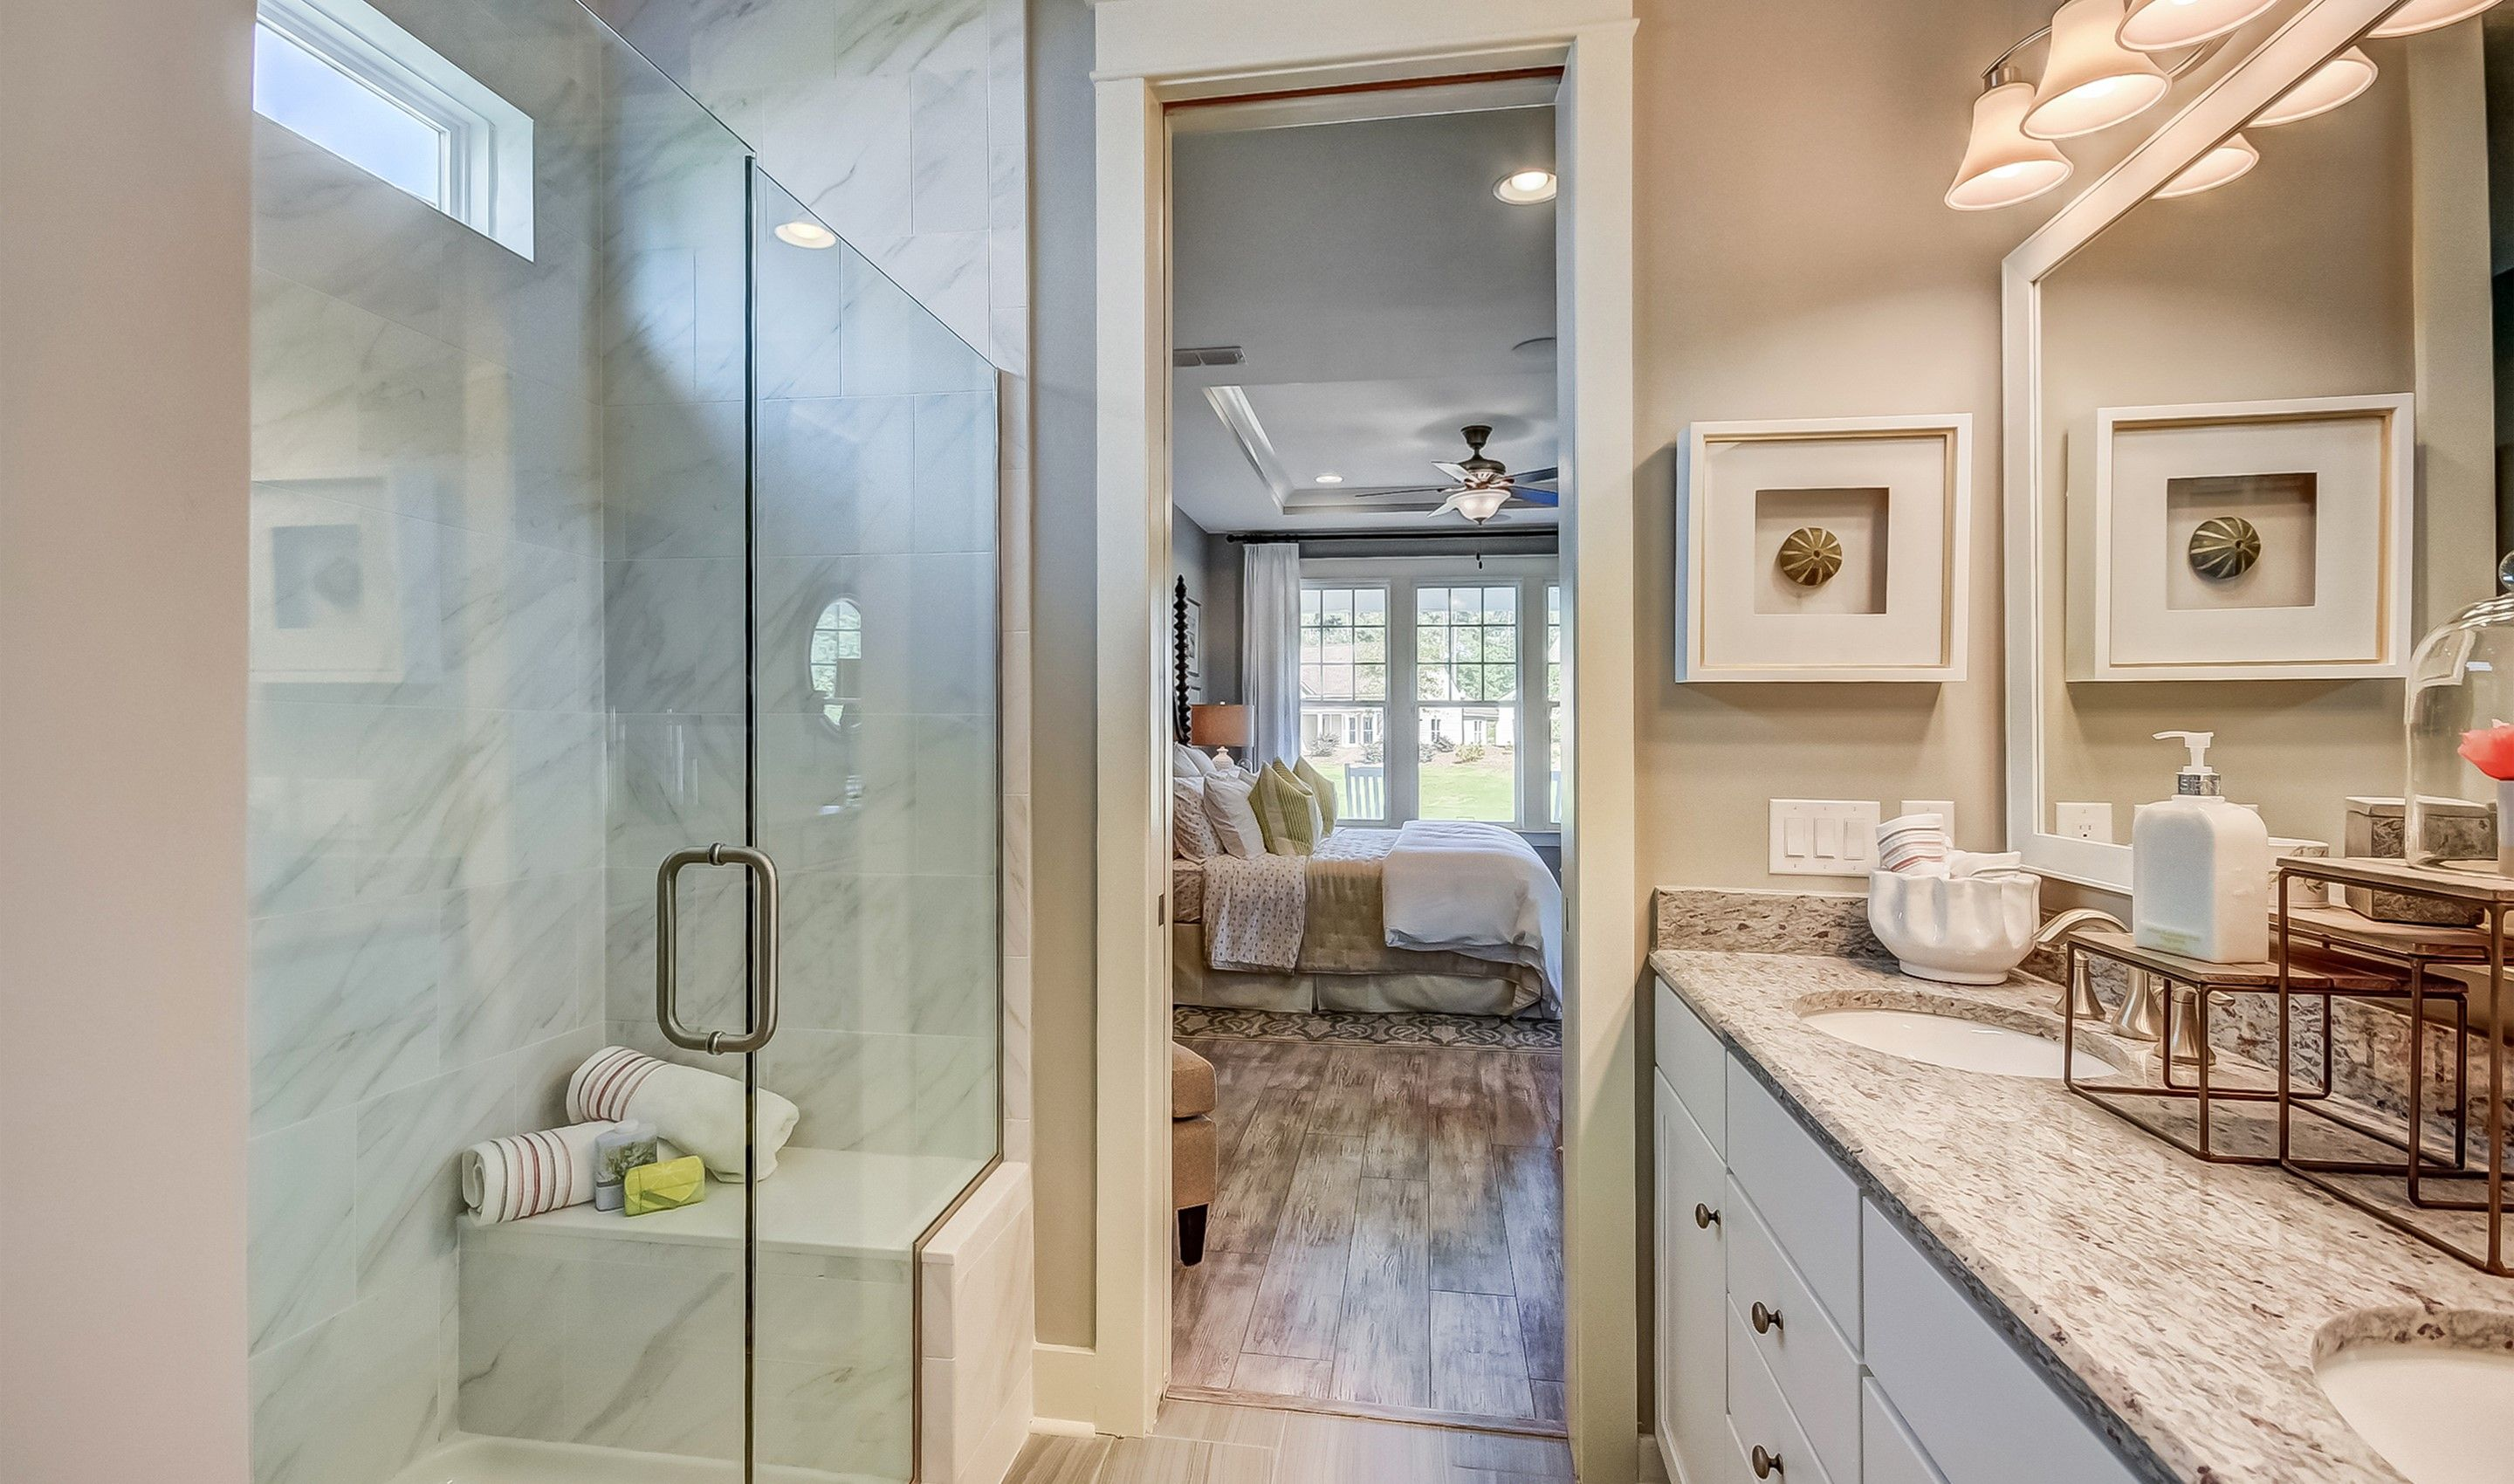 Bathroom featured in the Athens By K. Hovnanian's® Four Seasons in Hilton Head, SC